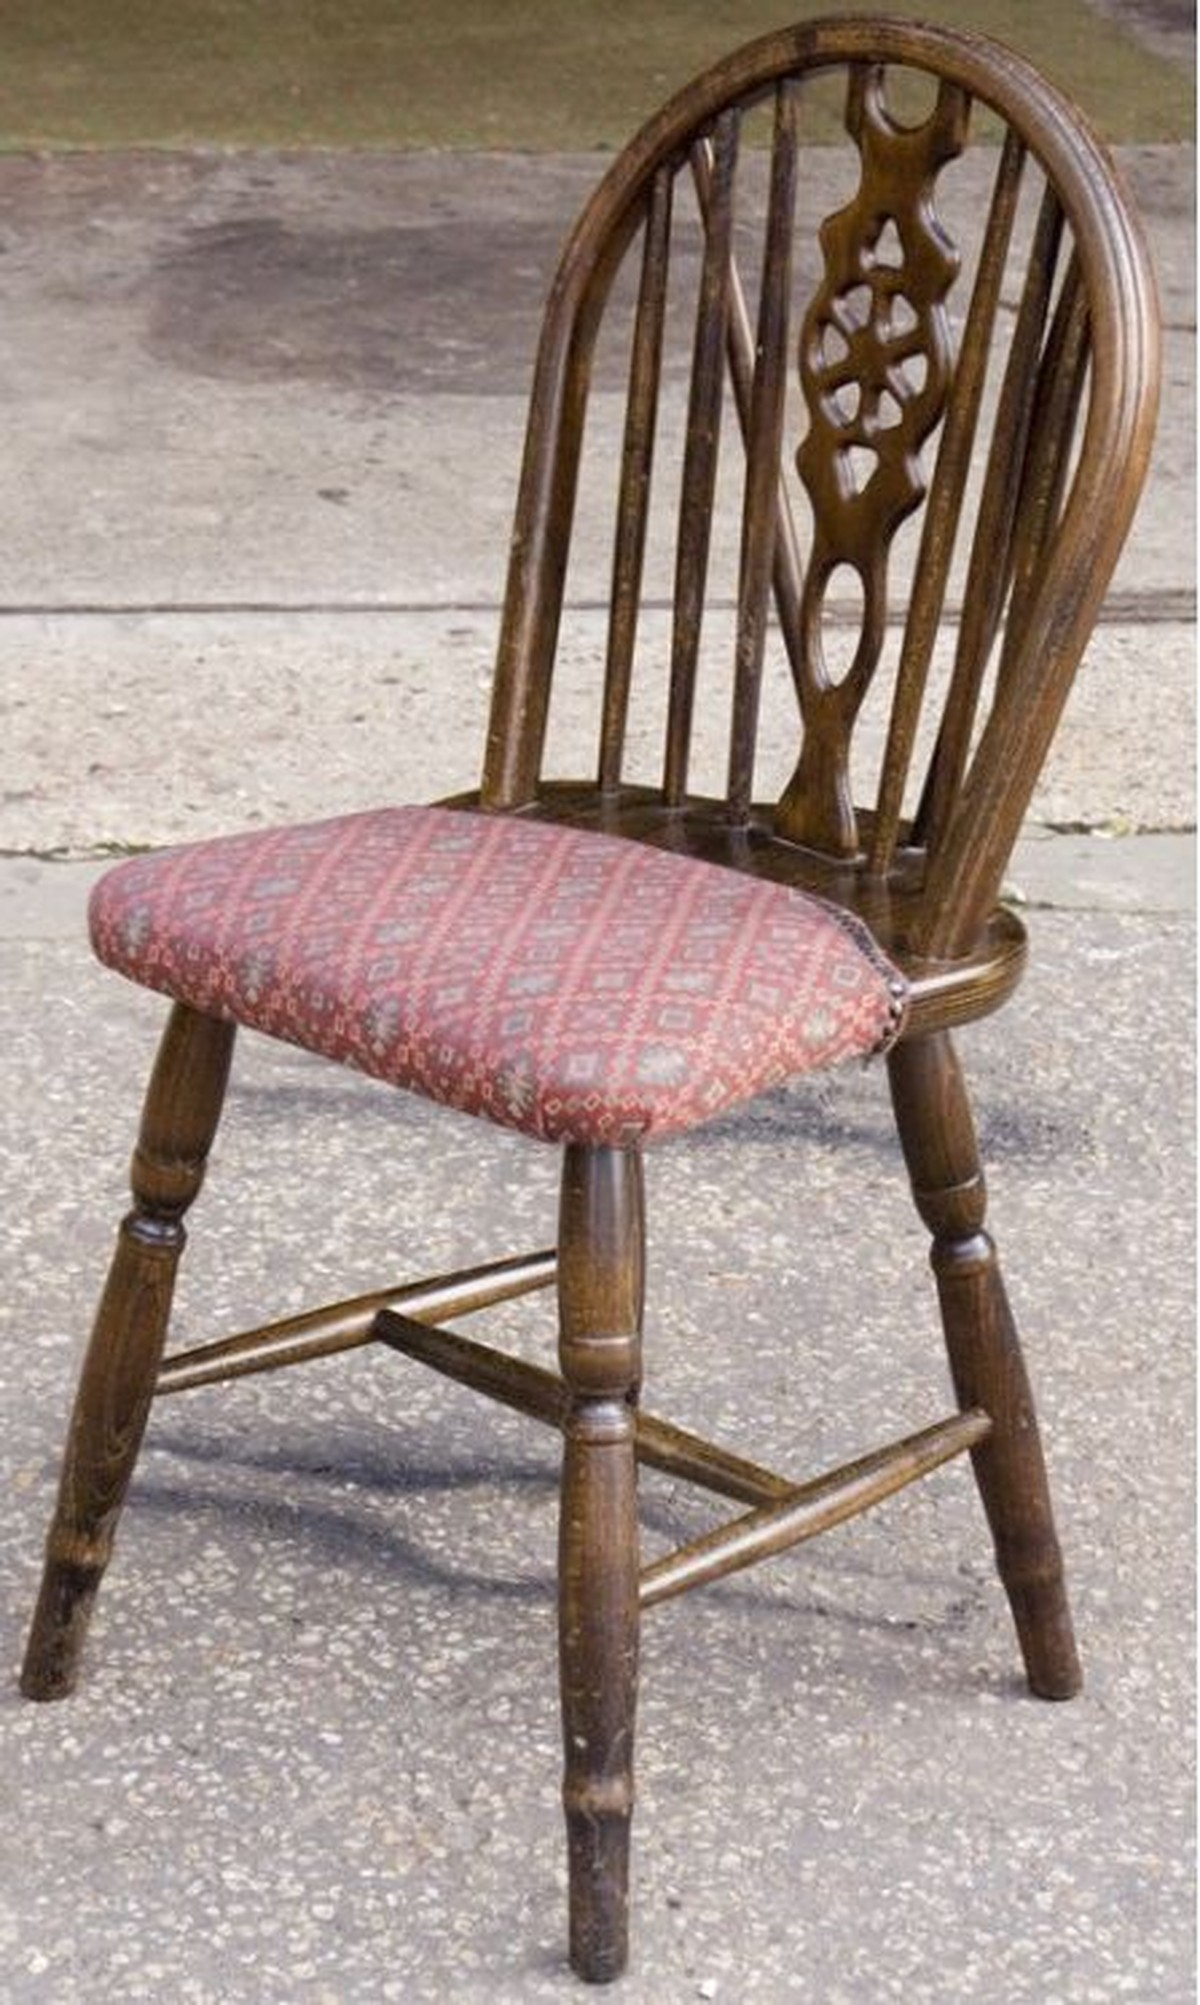 Secondhand Chairs and TablesMayfair Furniture Clearance